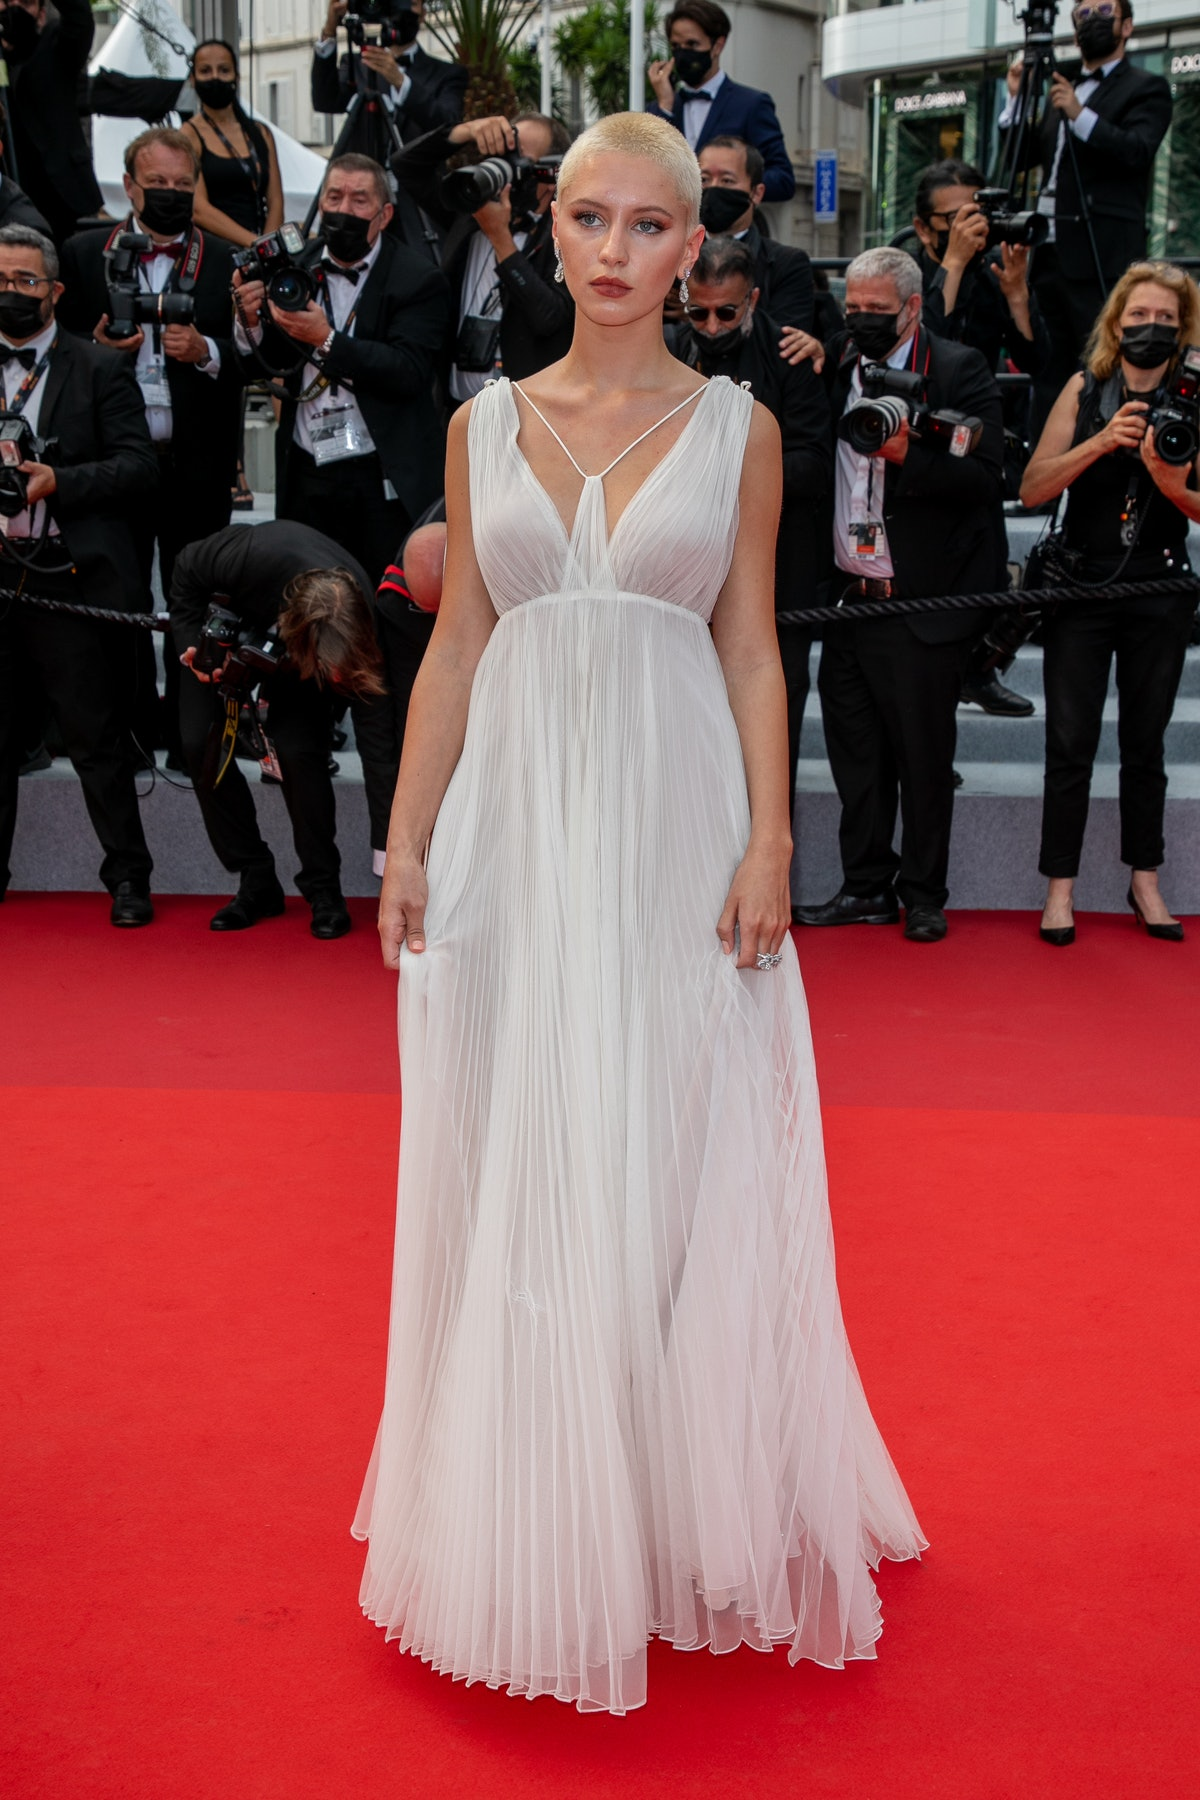 Iris Law wearing white Dior gown